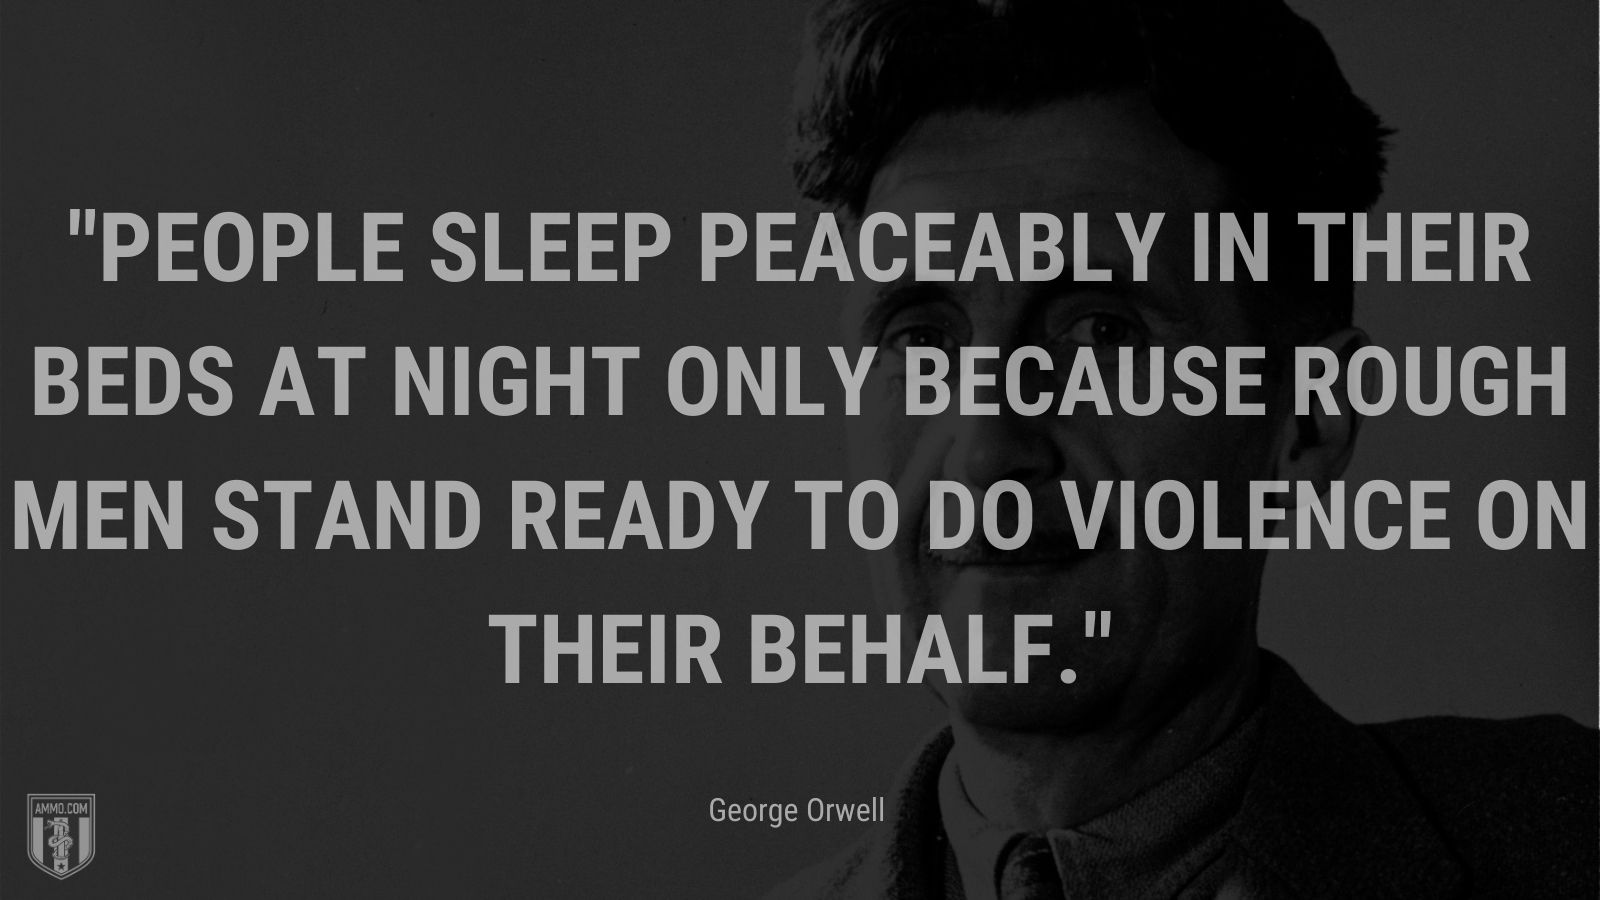 """""""People sleep peaceably in their beds at night only because rough men stand ready to do violence on their behalf."""" - George Orwell"""